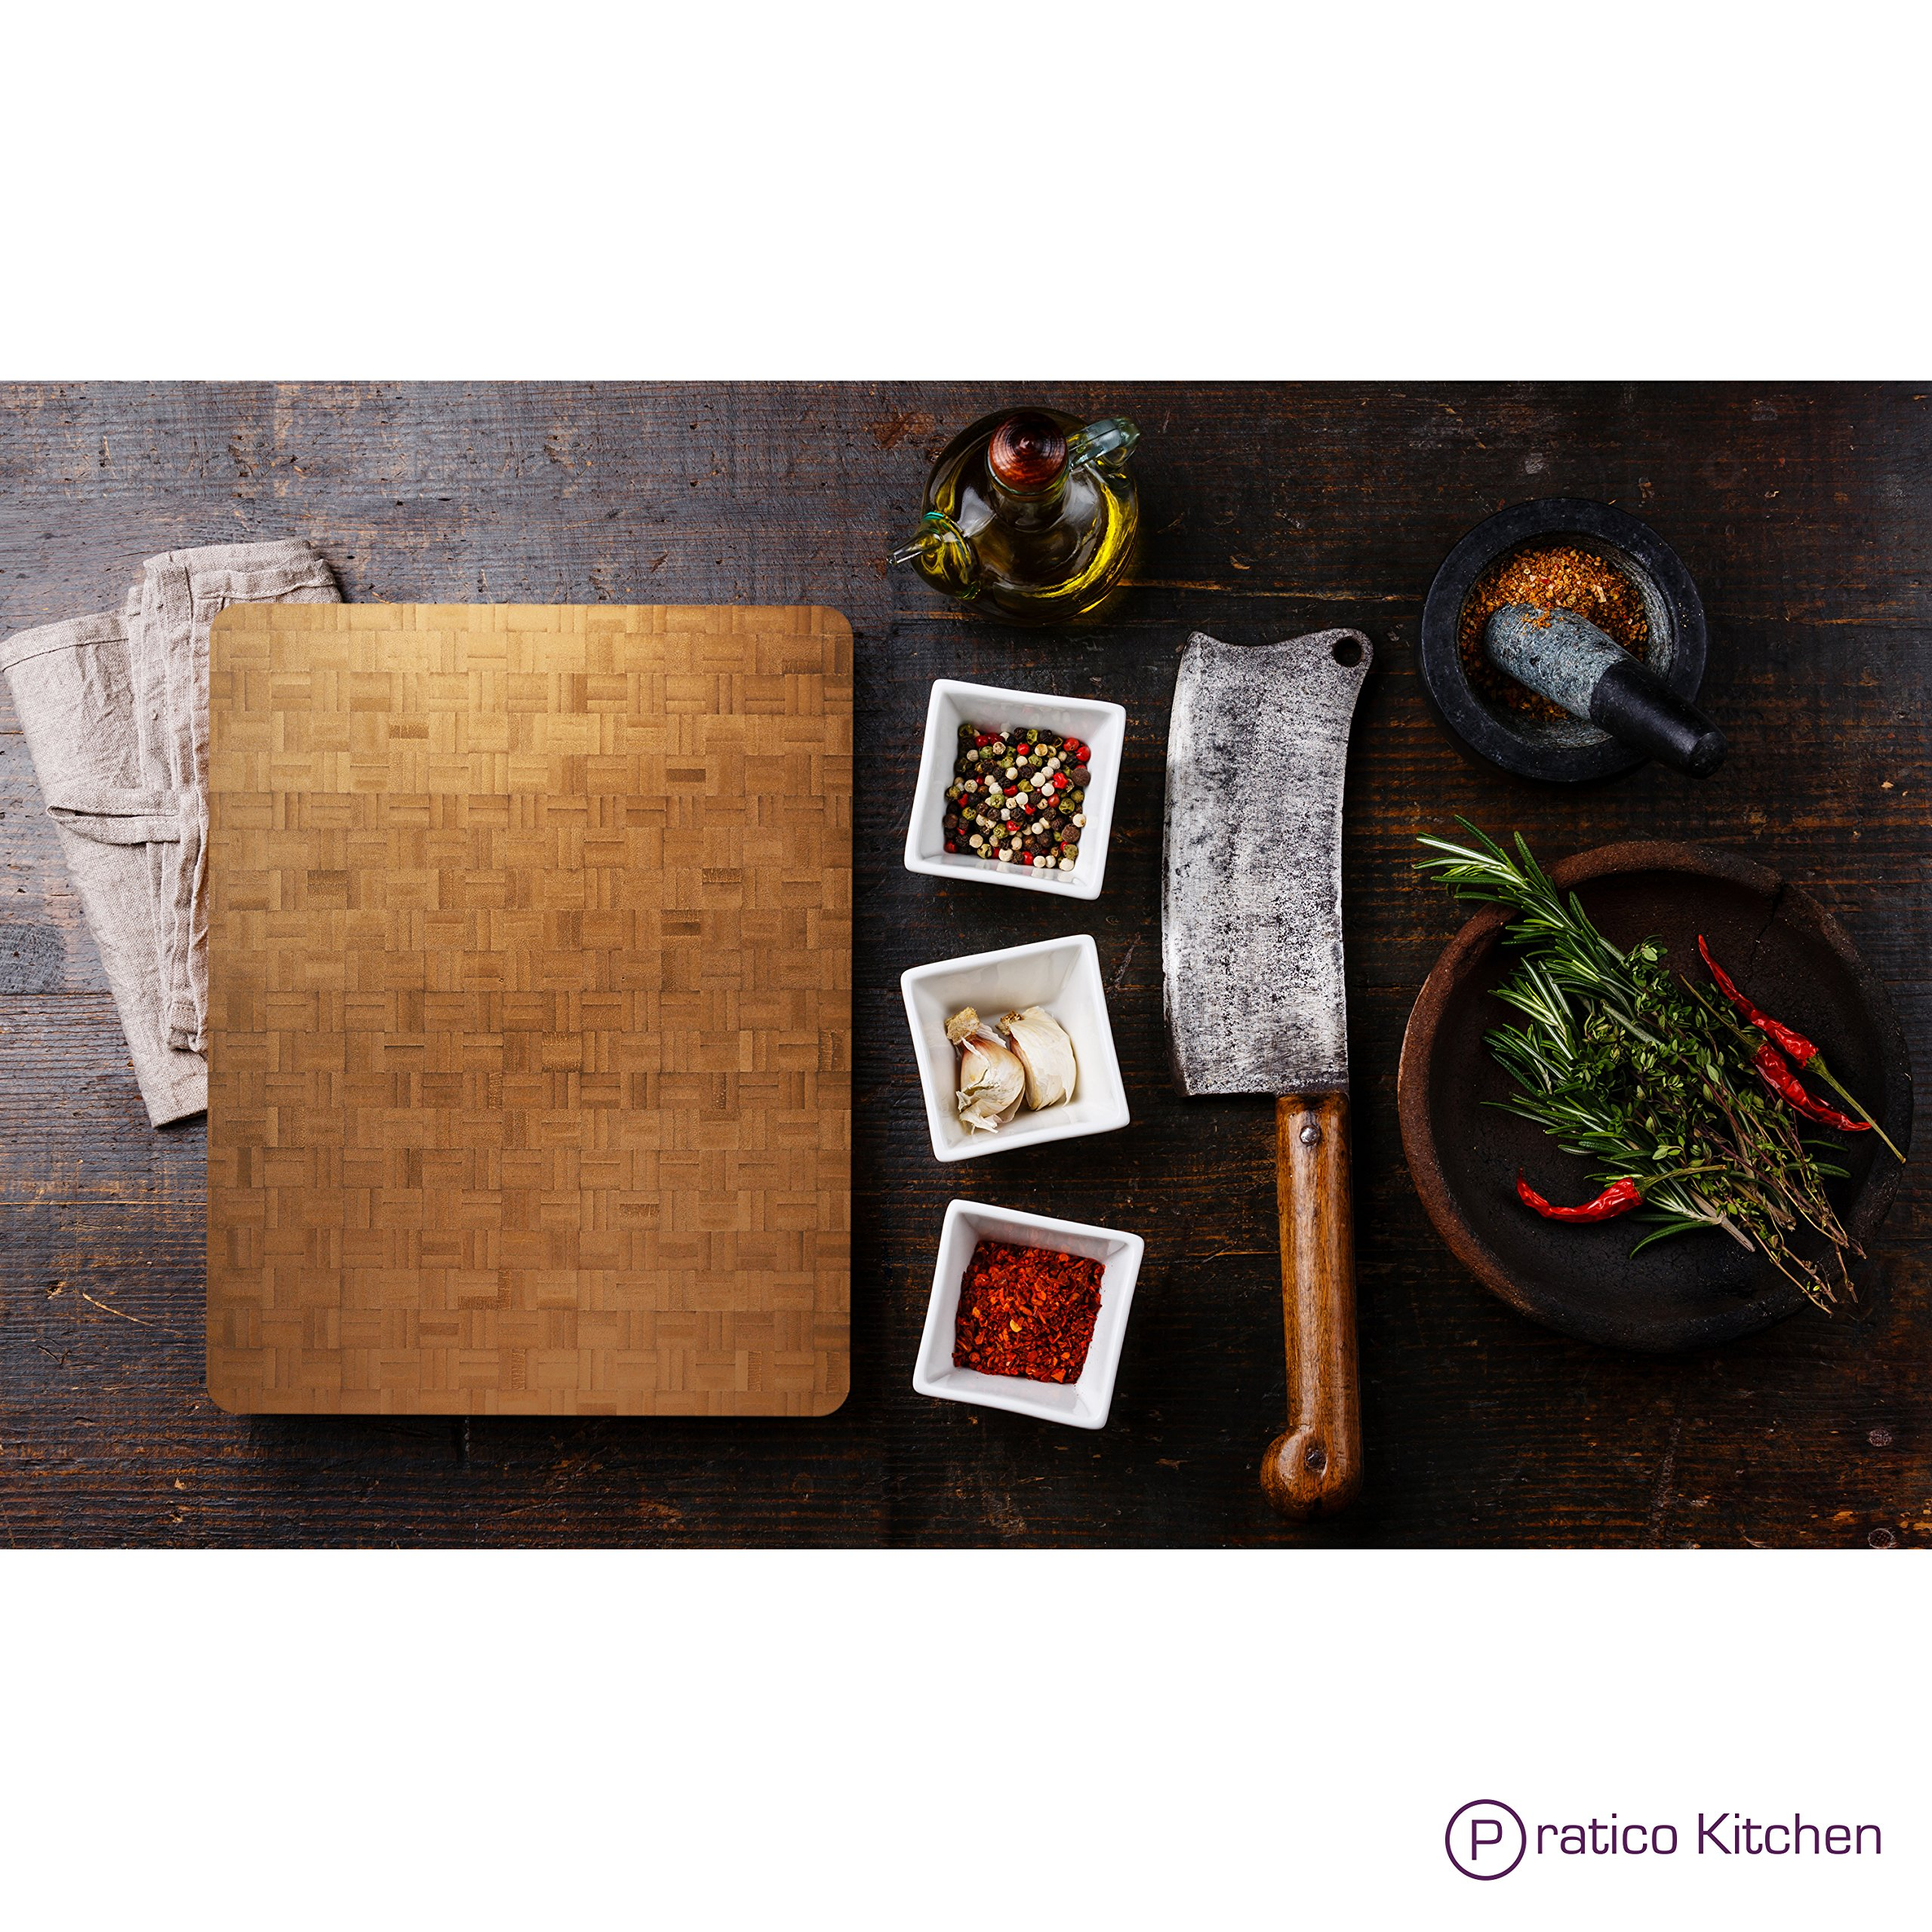 Pratico Kitchen Reversible Organic End Grain Butcher Chopping Block & Serving Tray - 16.5 x 13.5 x 2 inches by Pratico Kitchen (Image #5)